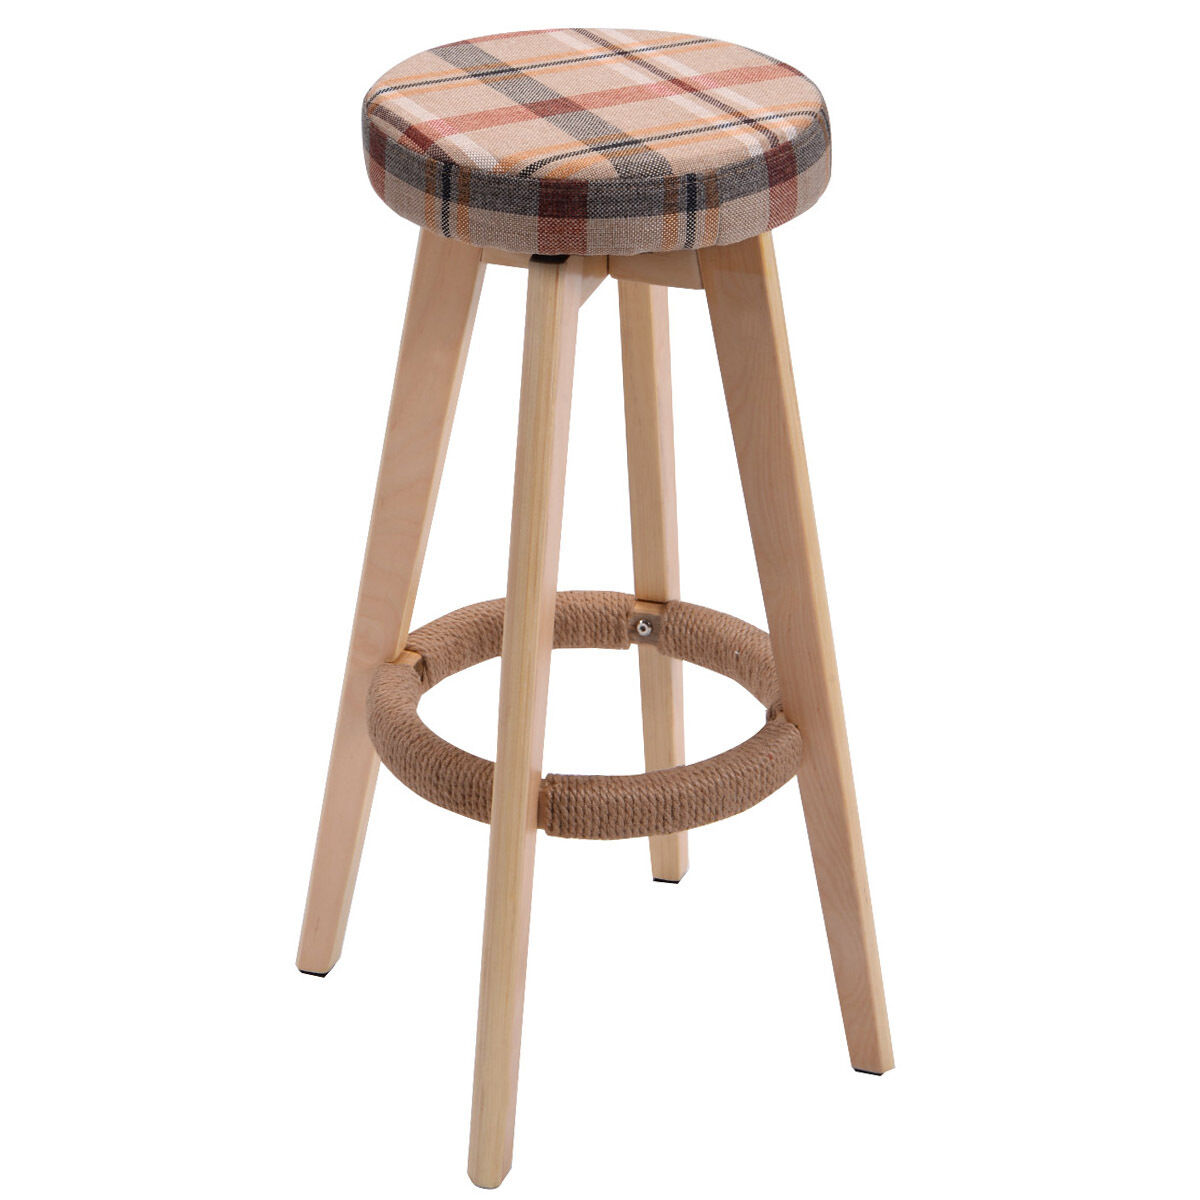 New round wooden linen bar stool dining counter barstools high chair furniture